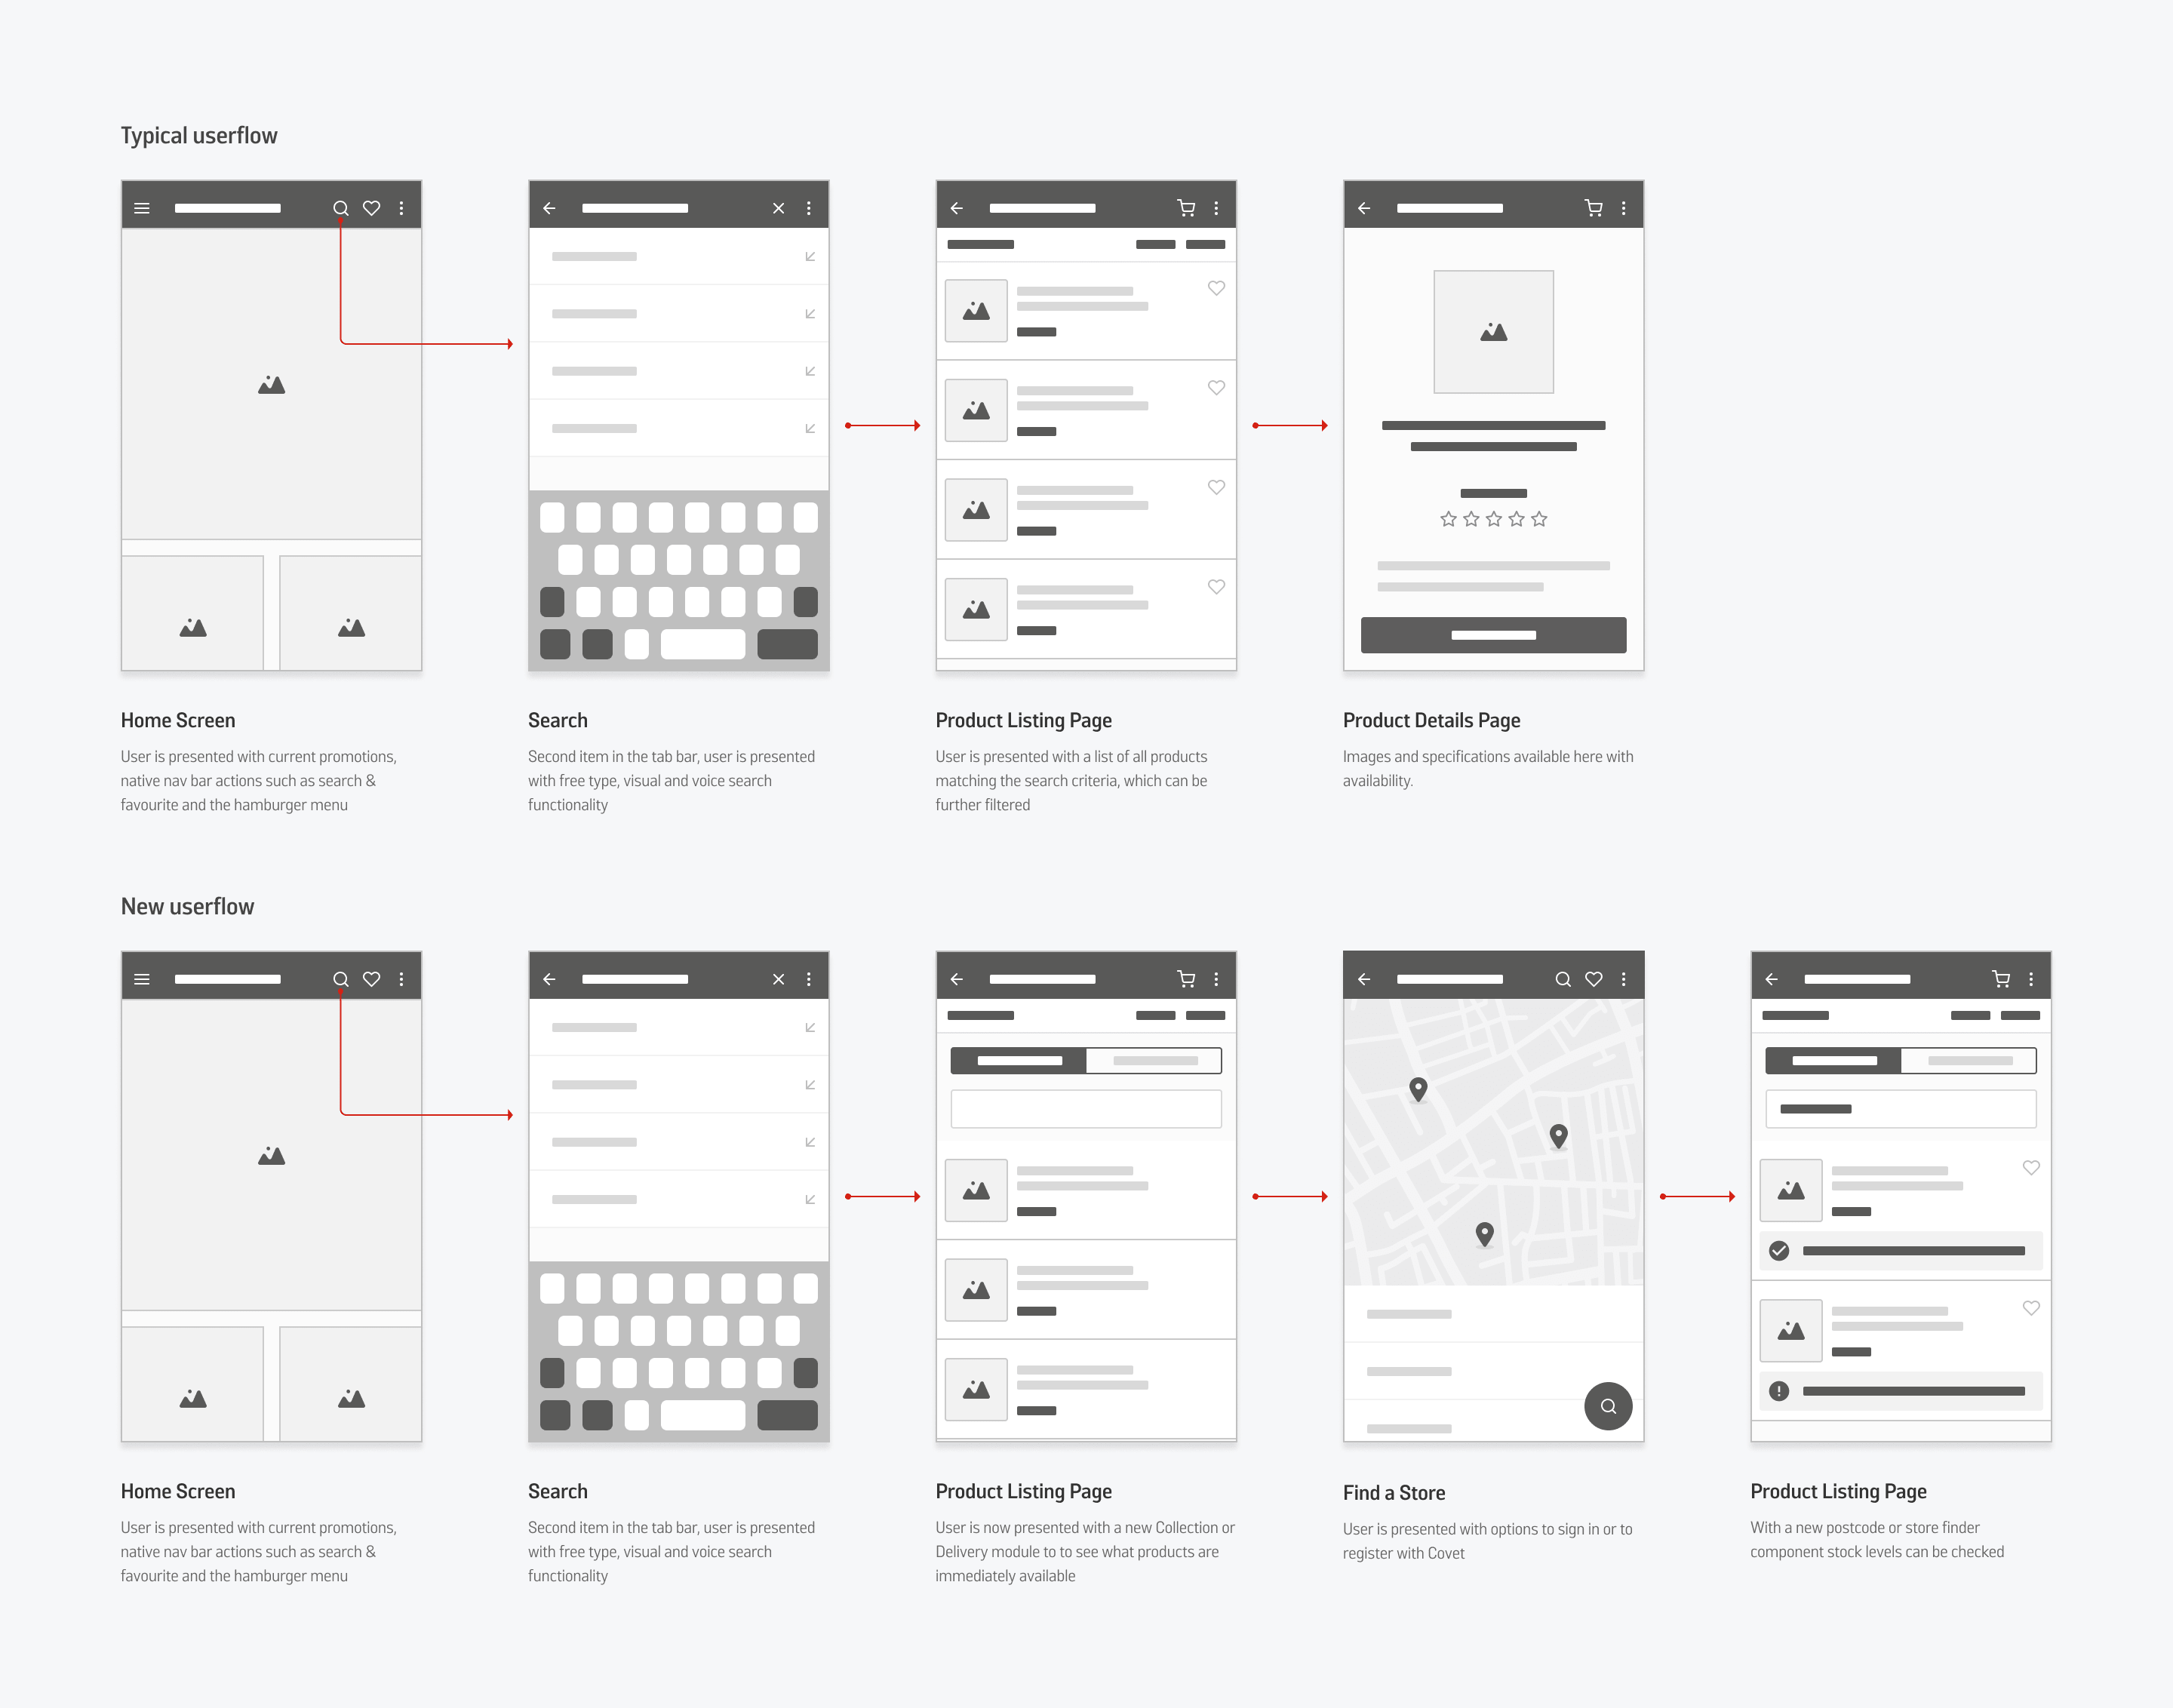 argos-android-availability-wireframes@2x